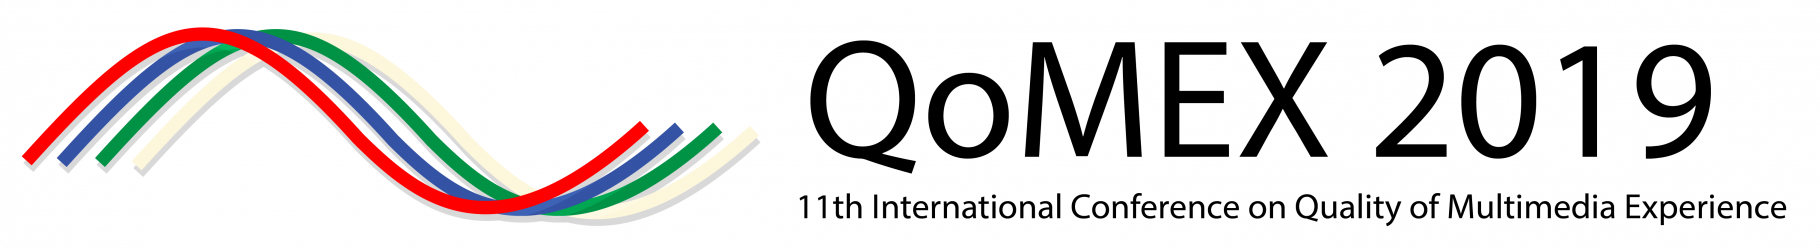 11th International Conference on Quality of Multimedia Experience